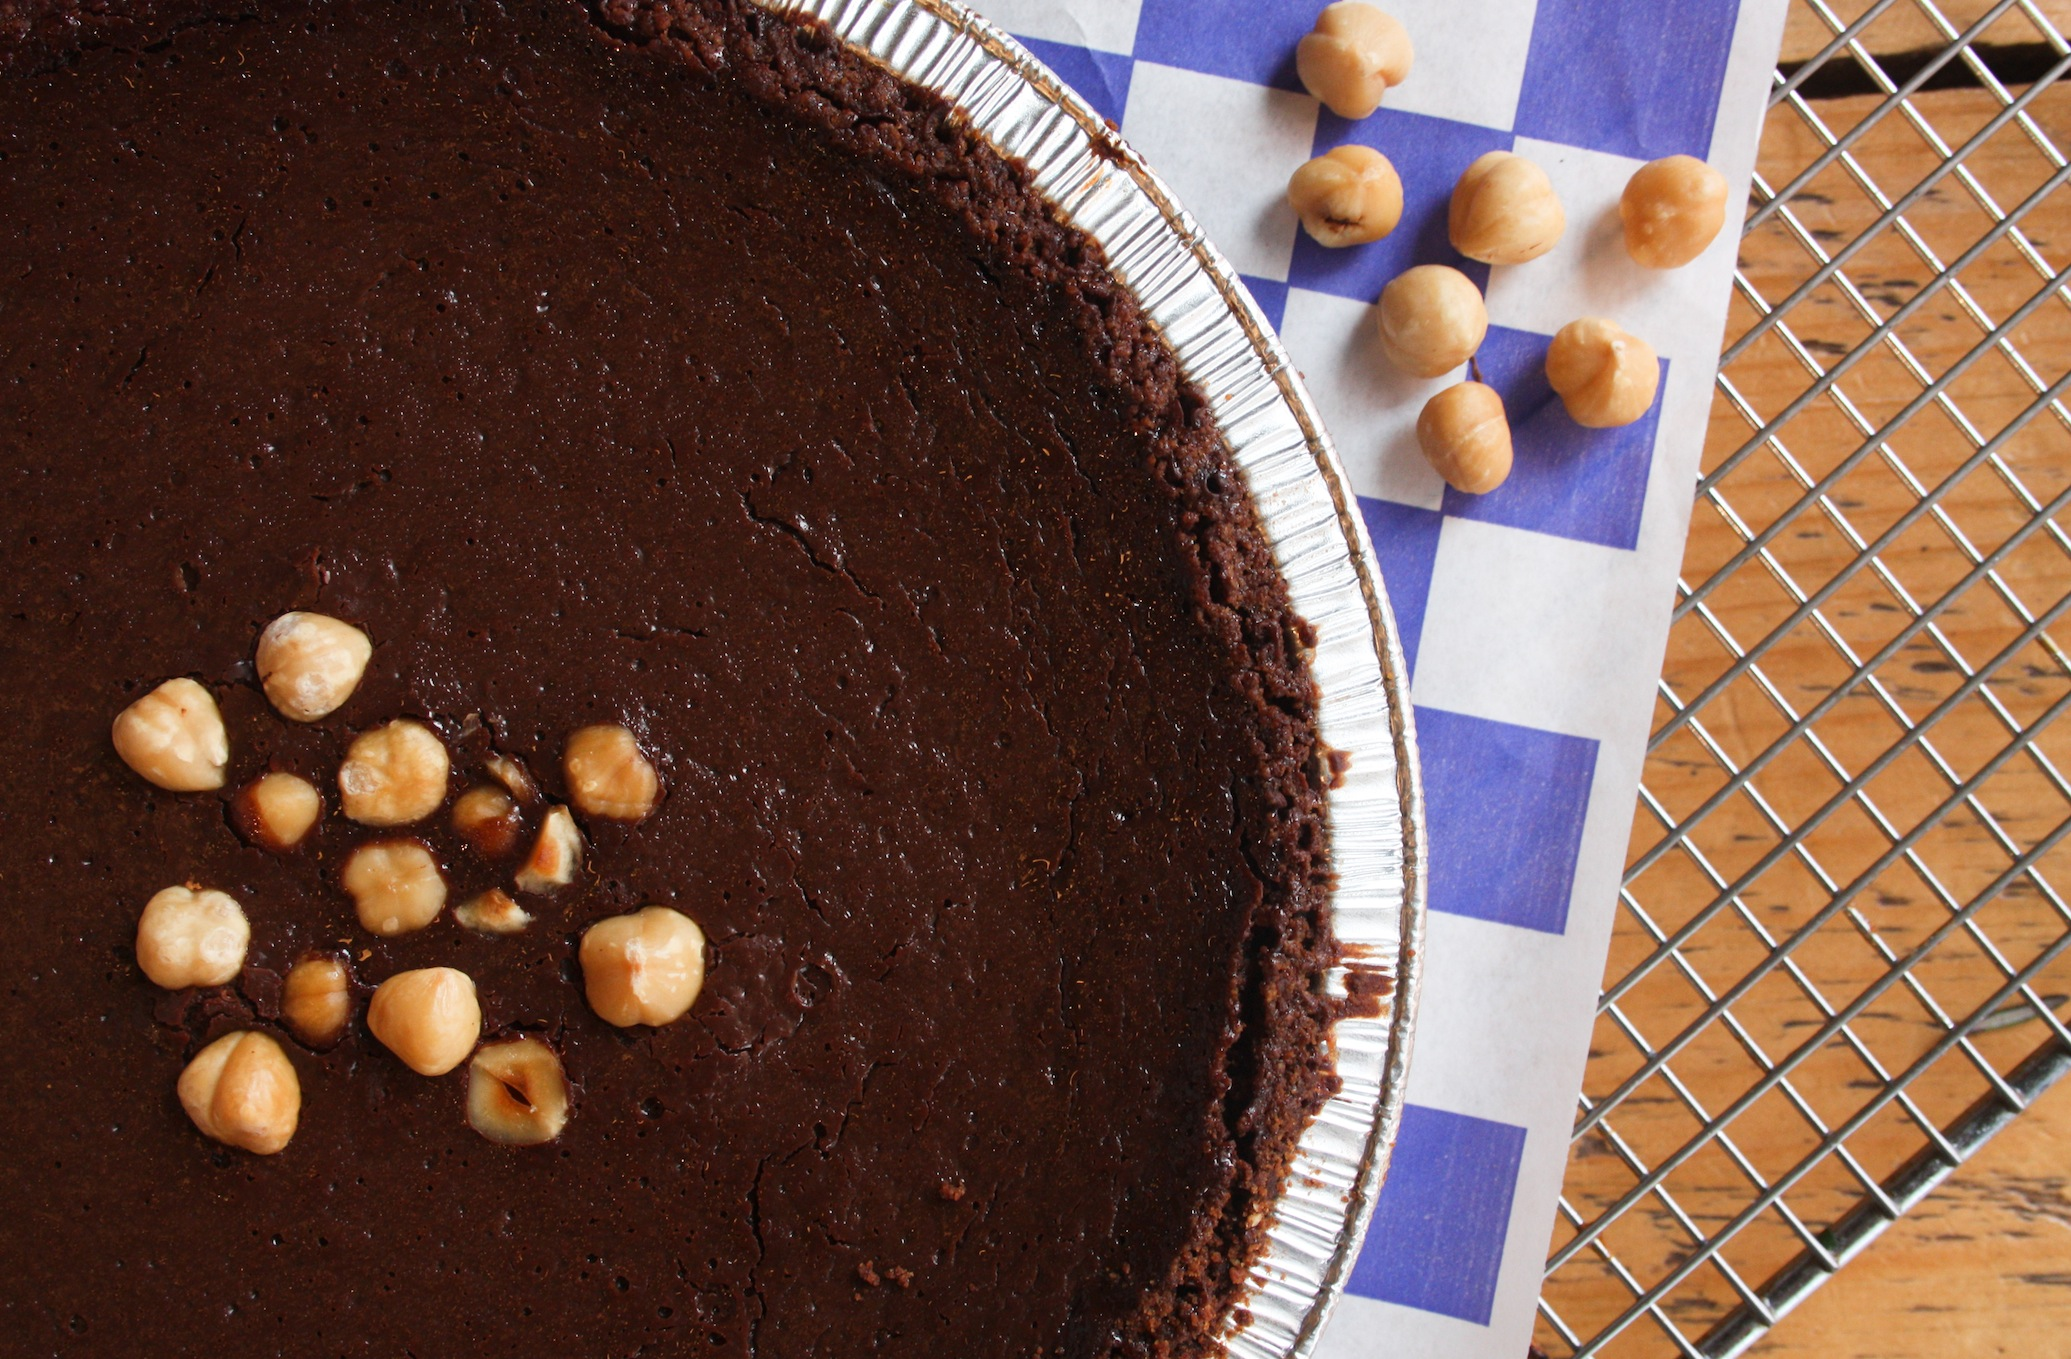 Chocolate Hazelnut Truffle with Chocolate Sea Salt Crust Pie | Image Courtesy of Pie Corps